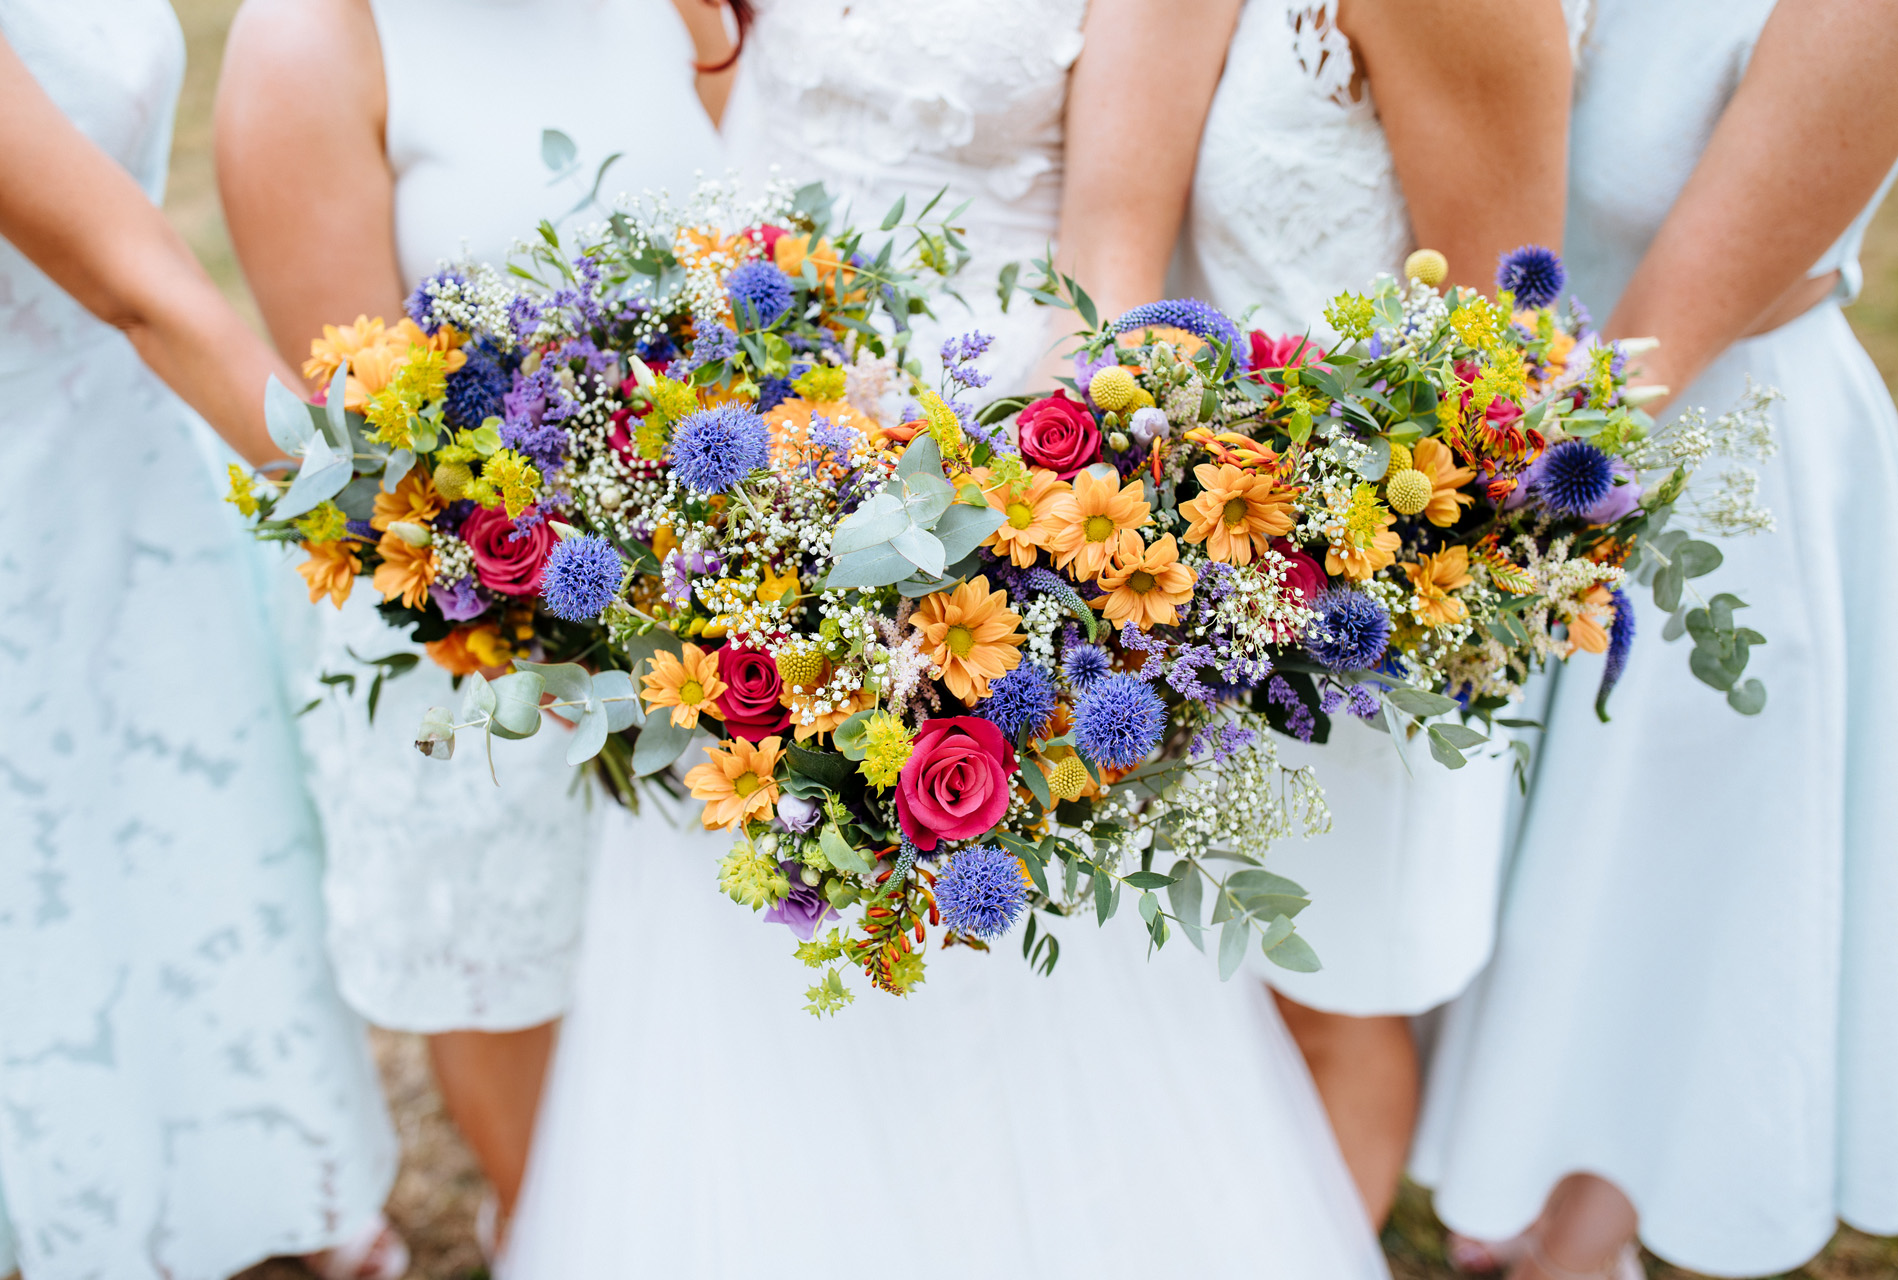 bride and bridesmaids bouquets with purple, yellow and red flowers at syon park